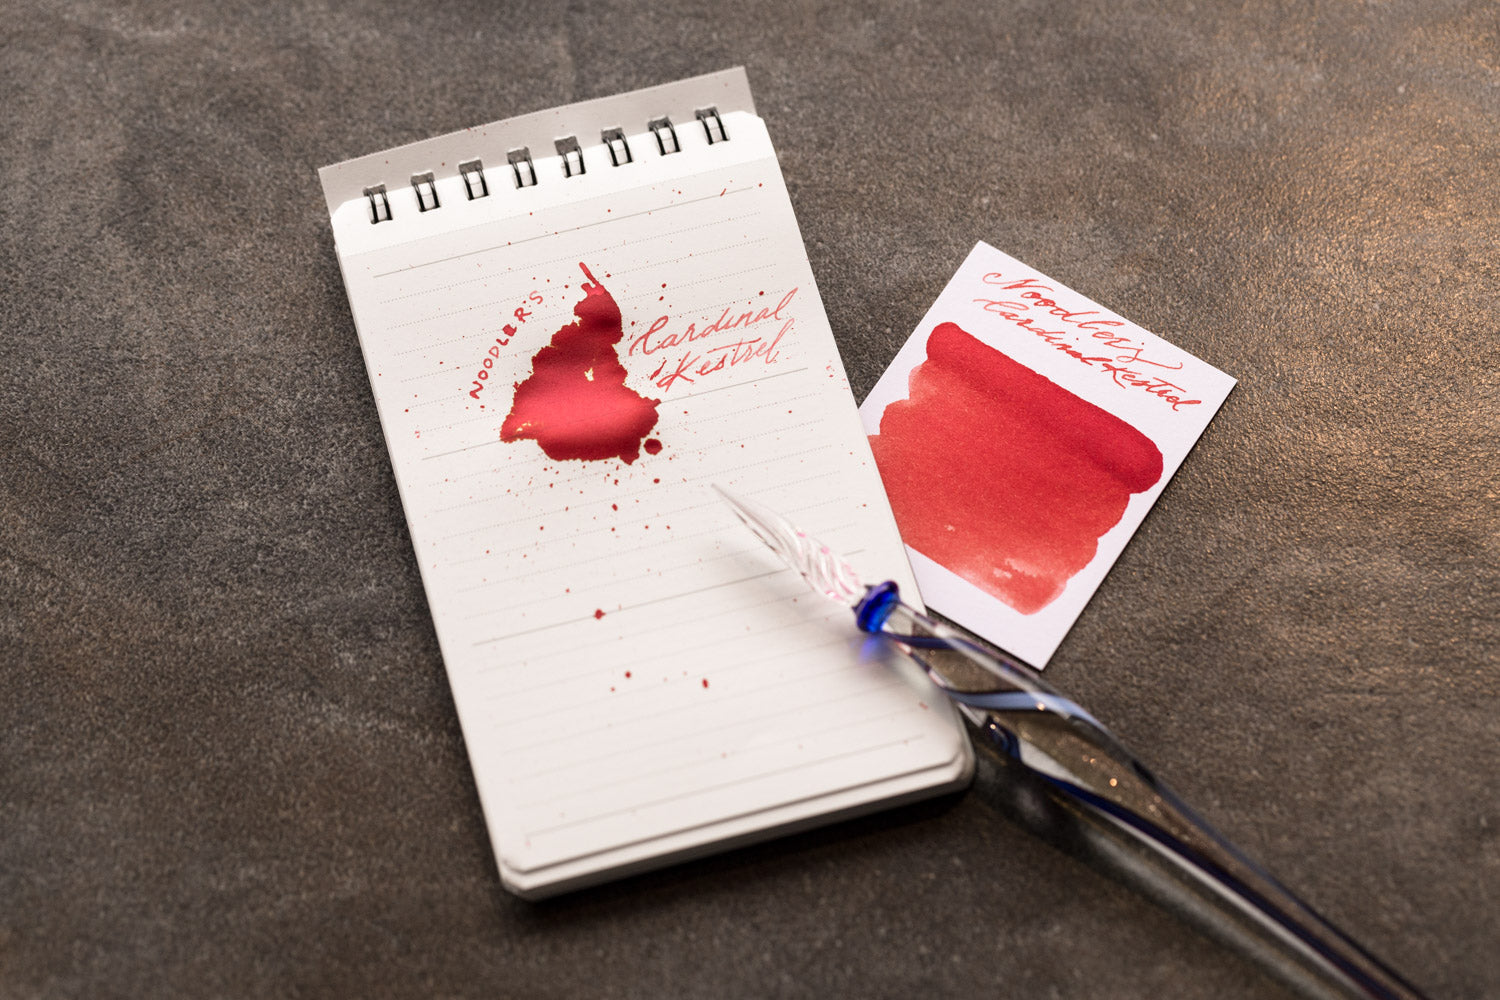 Noodler's Cardinal Kestrel - Ink Sample